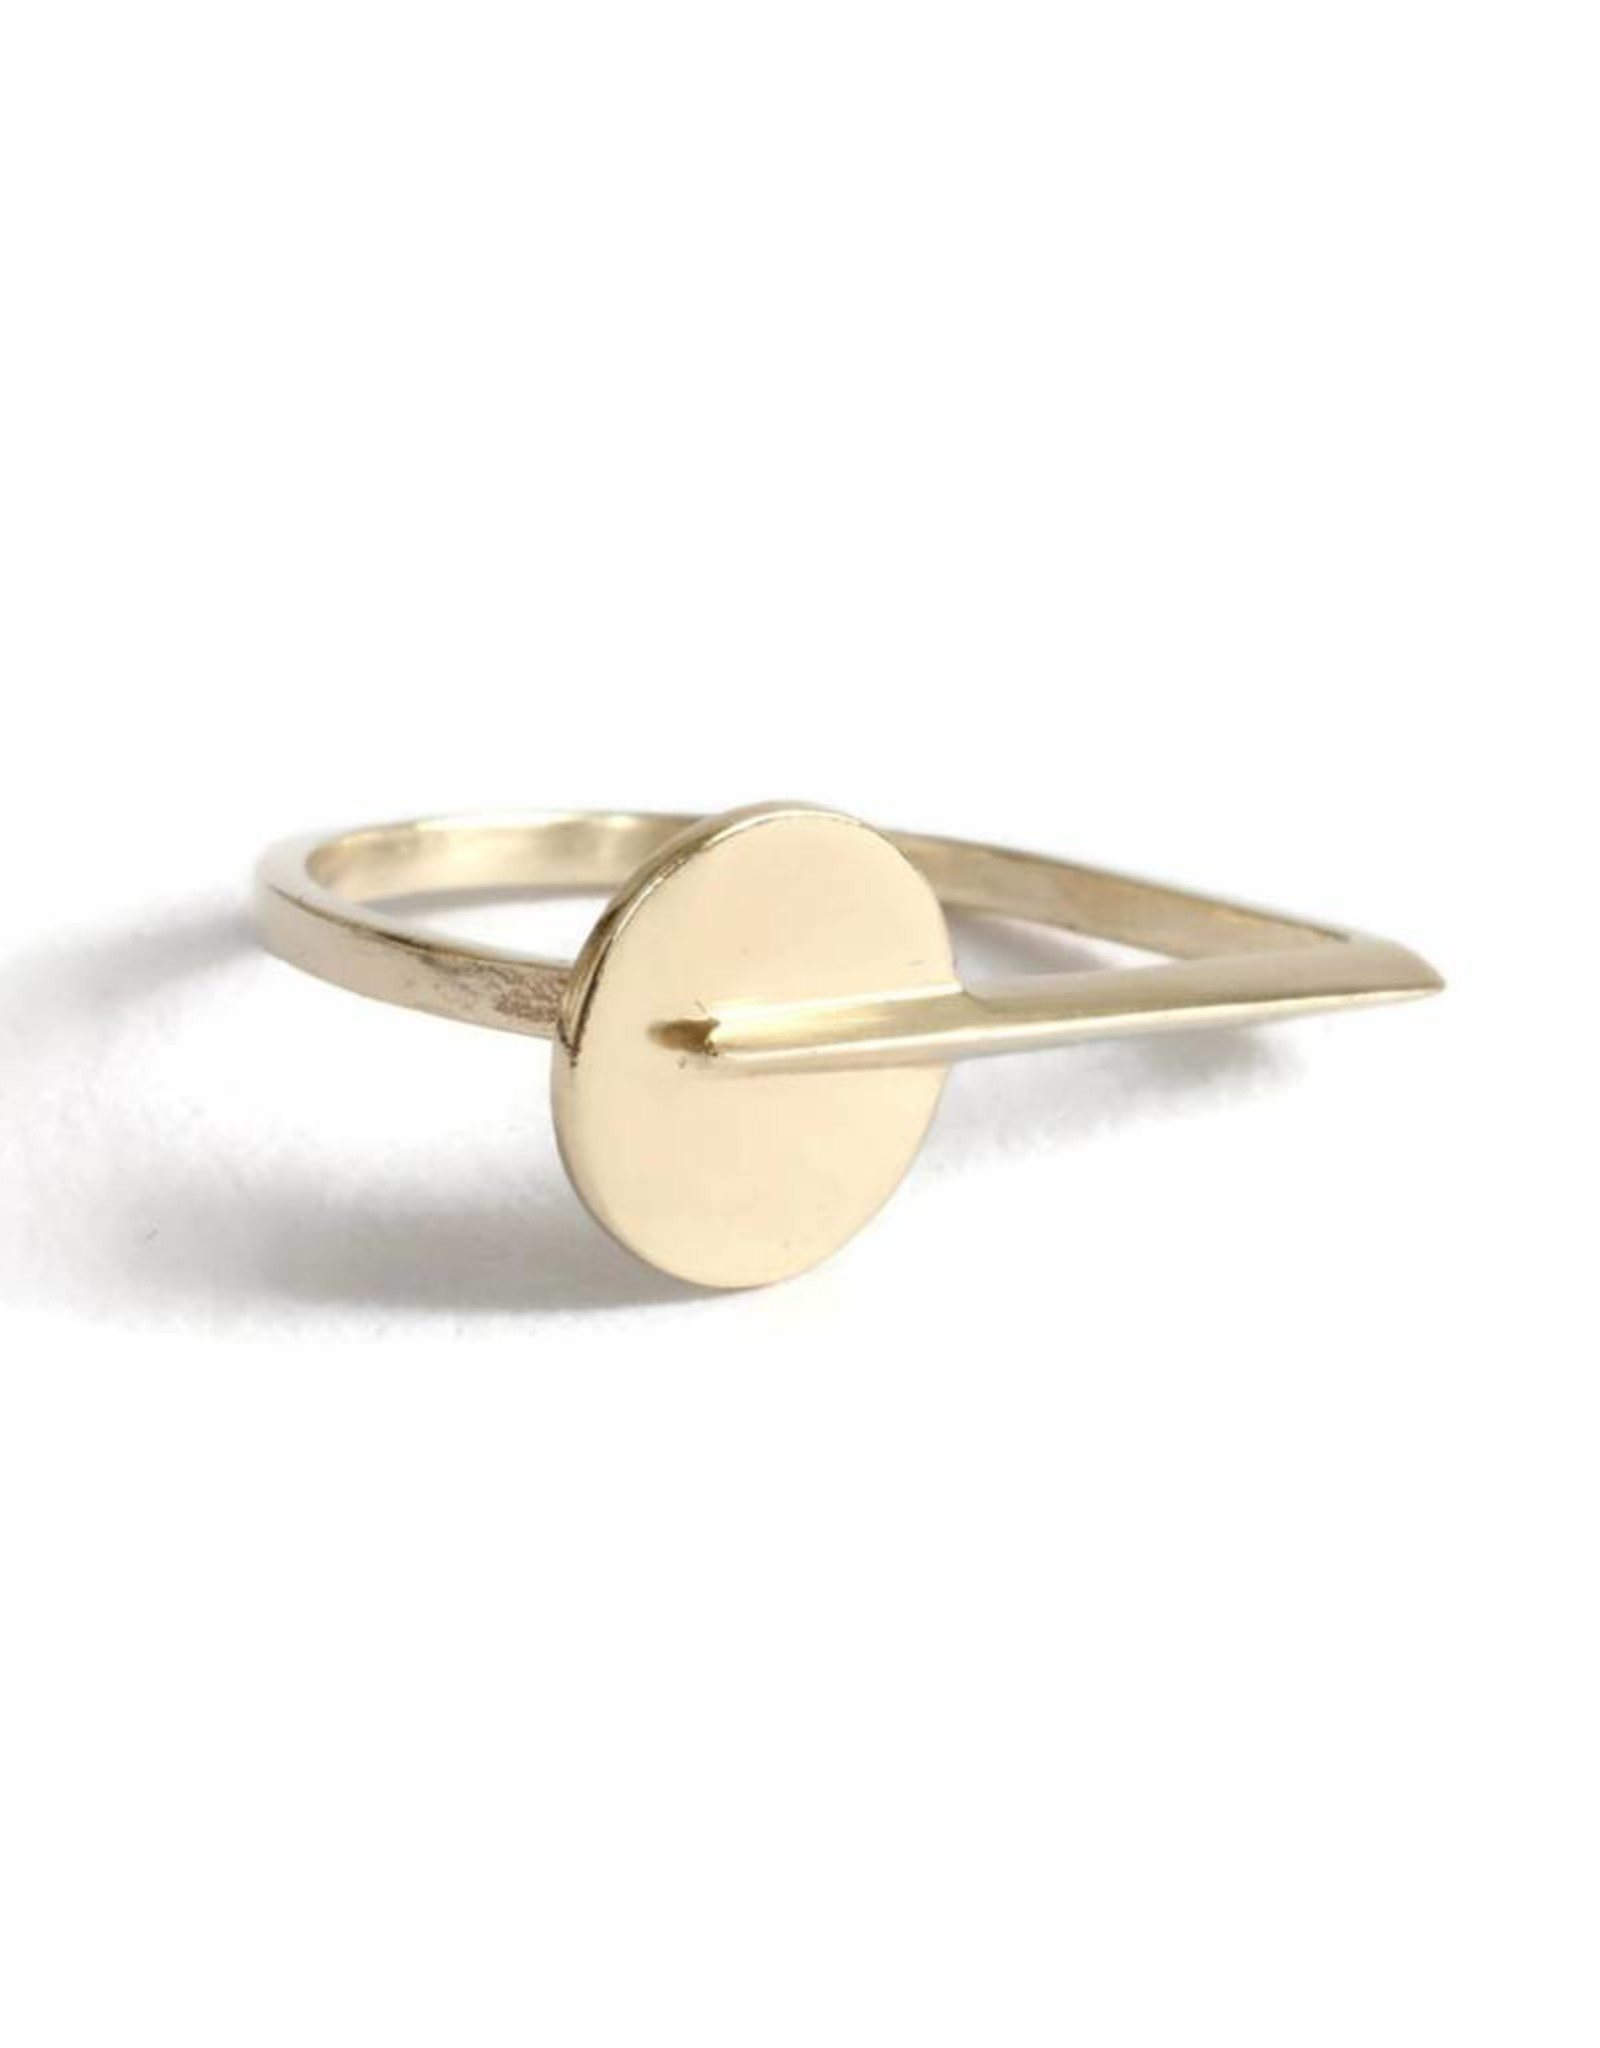 Lio & Linn Moonshine Ring